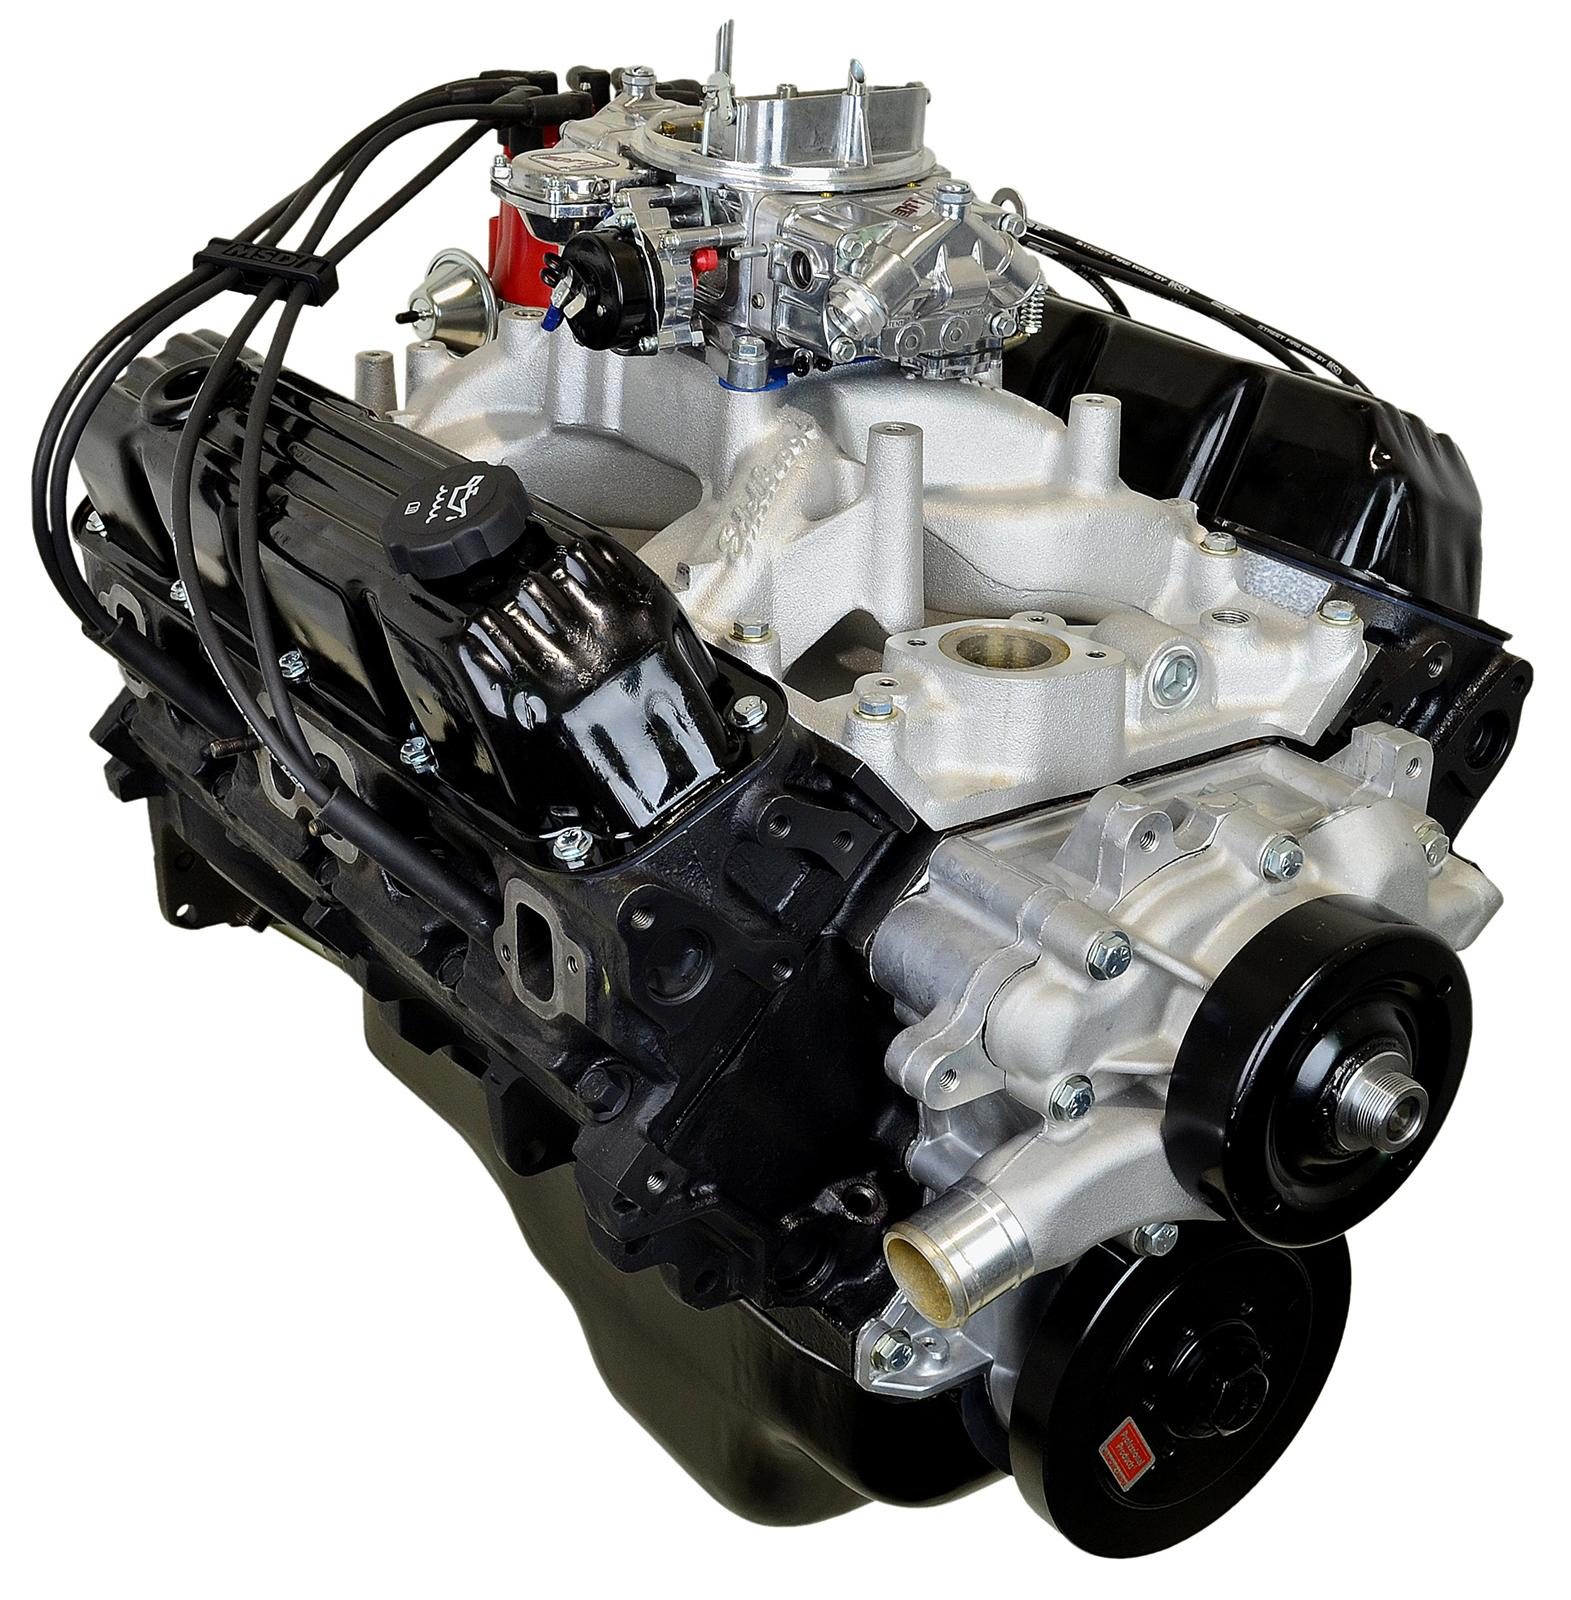 Crate Motors Mighty Mopars Examining 8 Great Crate Engines For Vintage Mopars